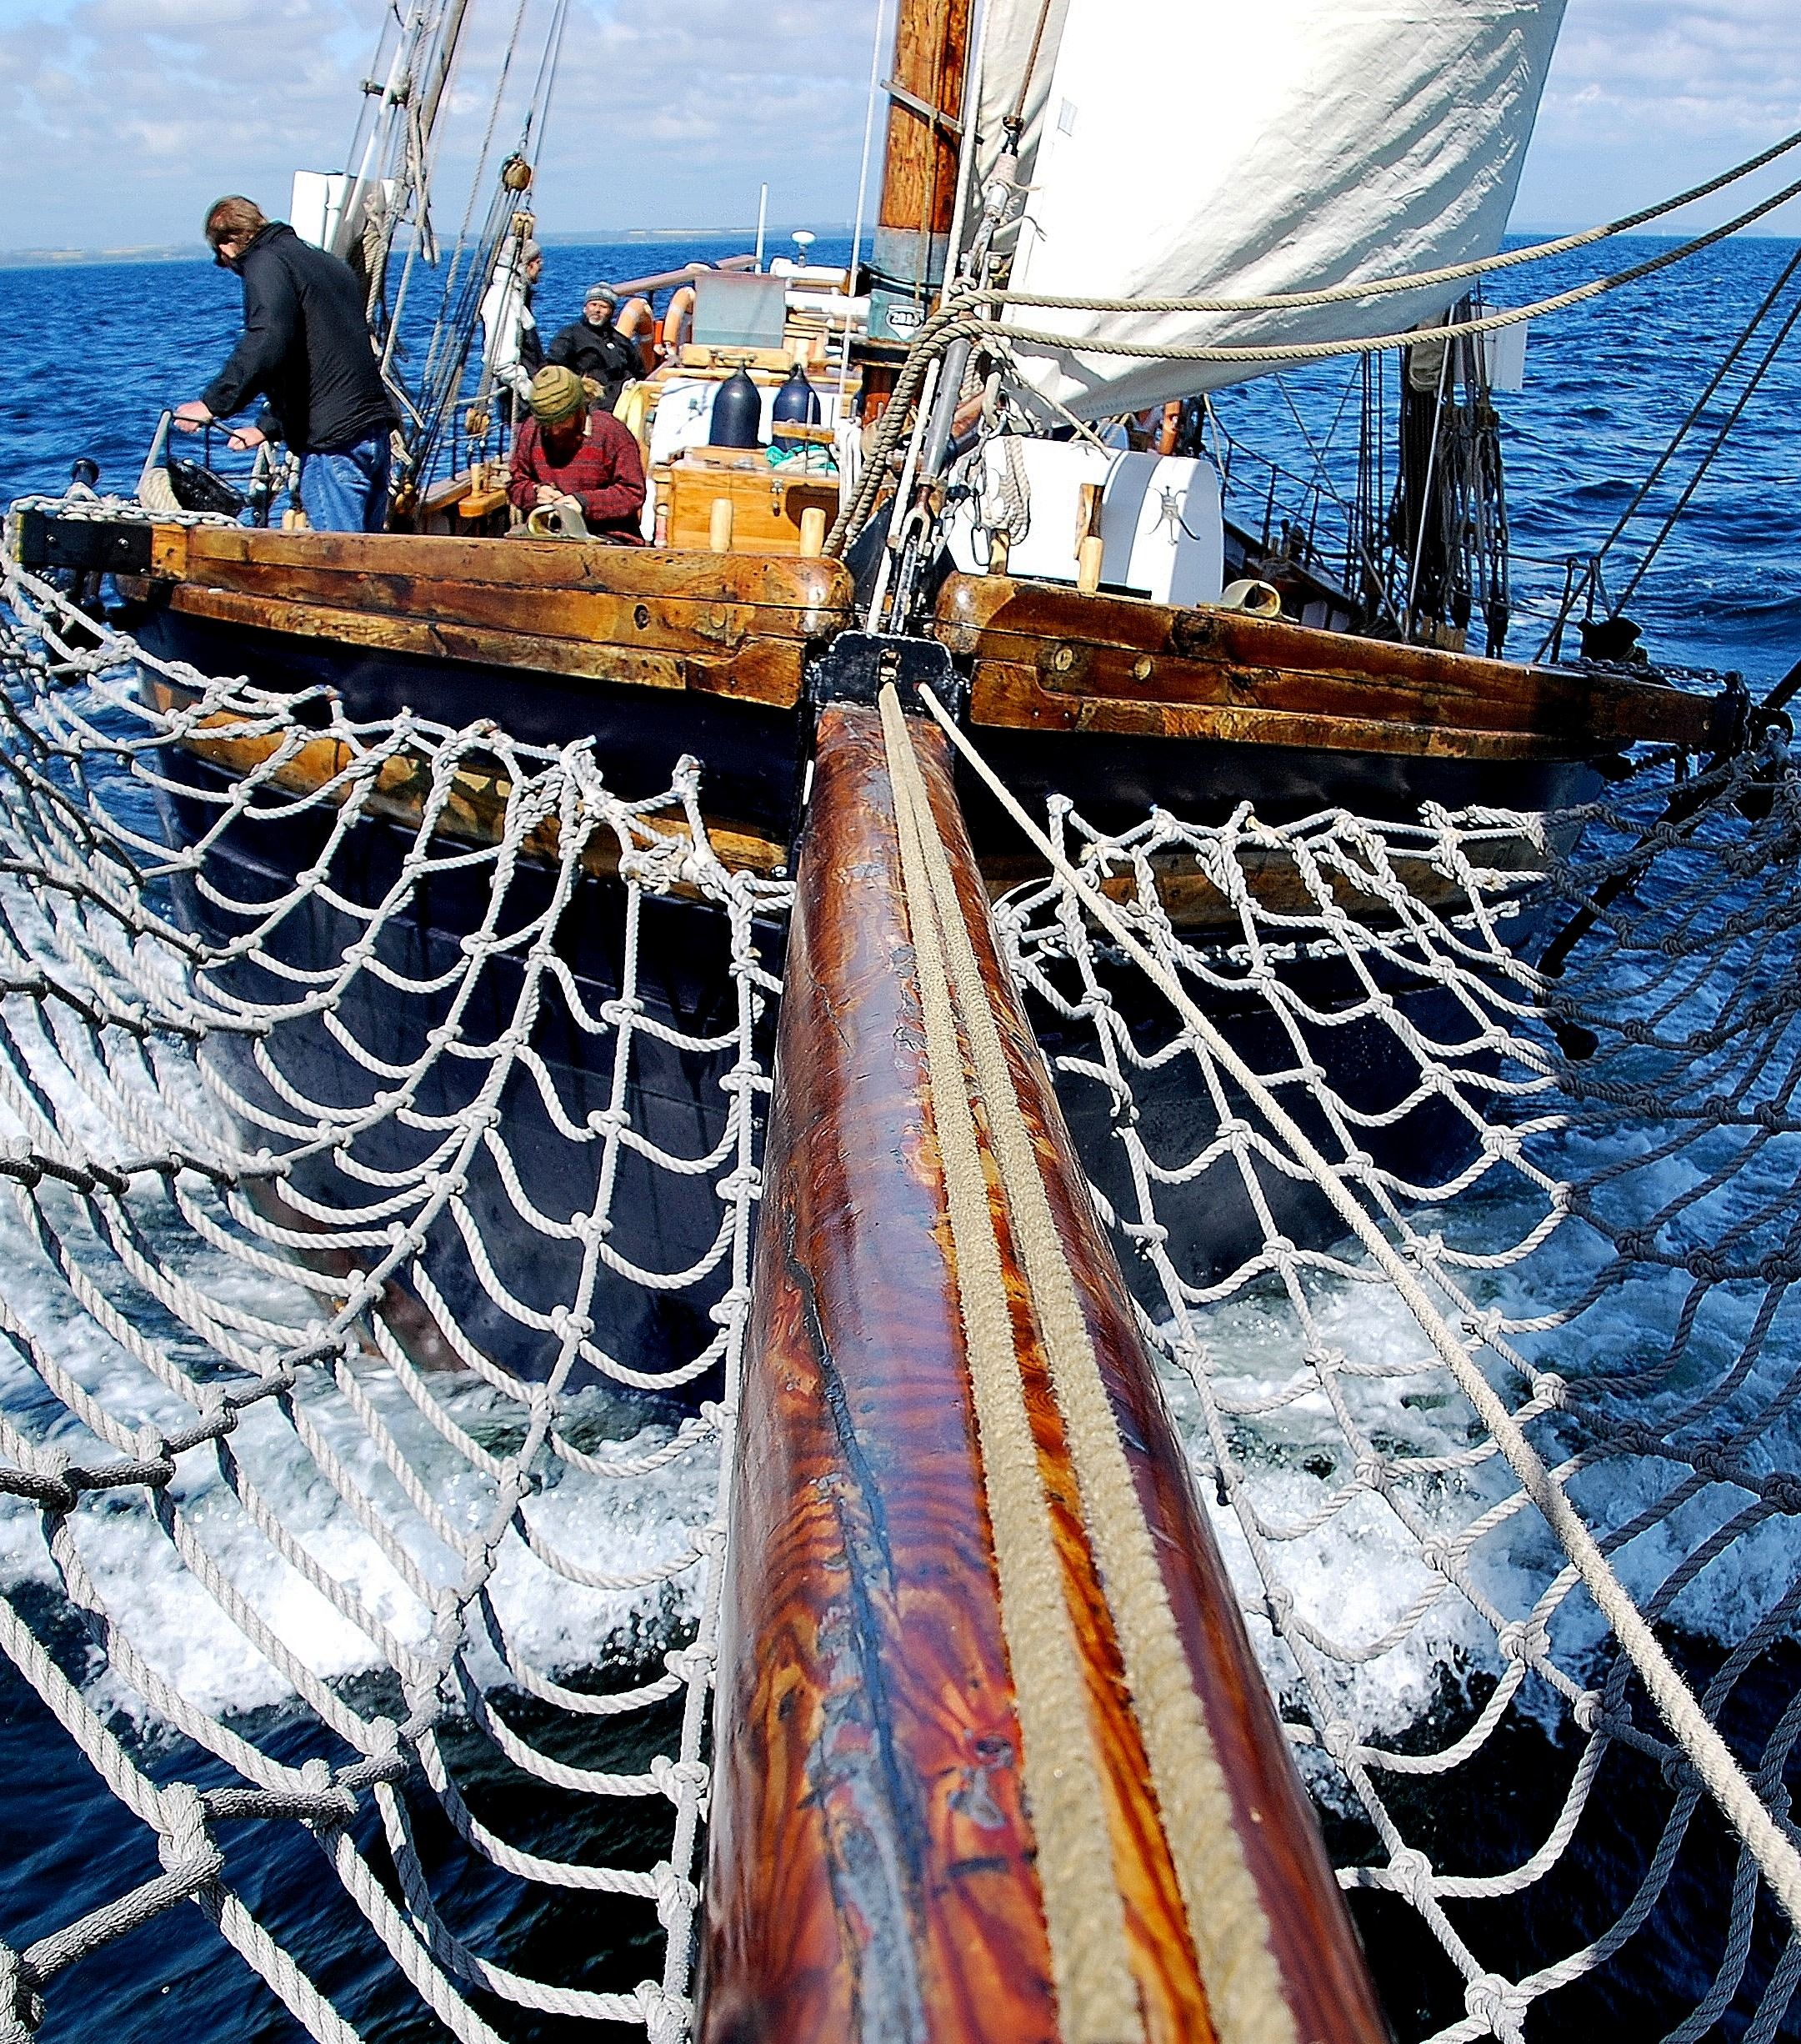 Sailing ship - Hoppet